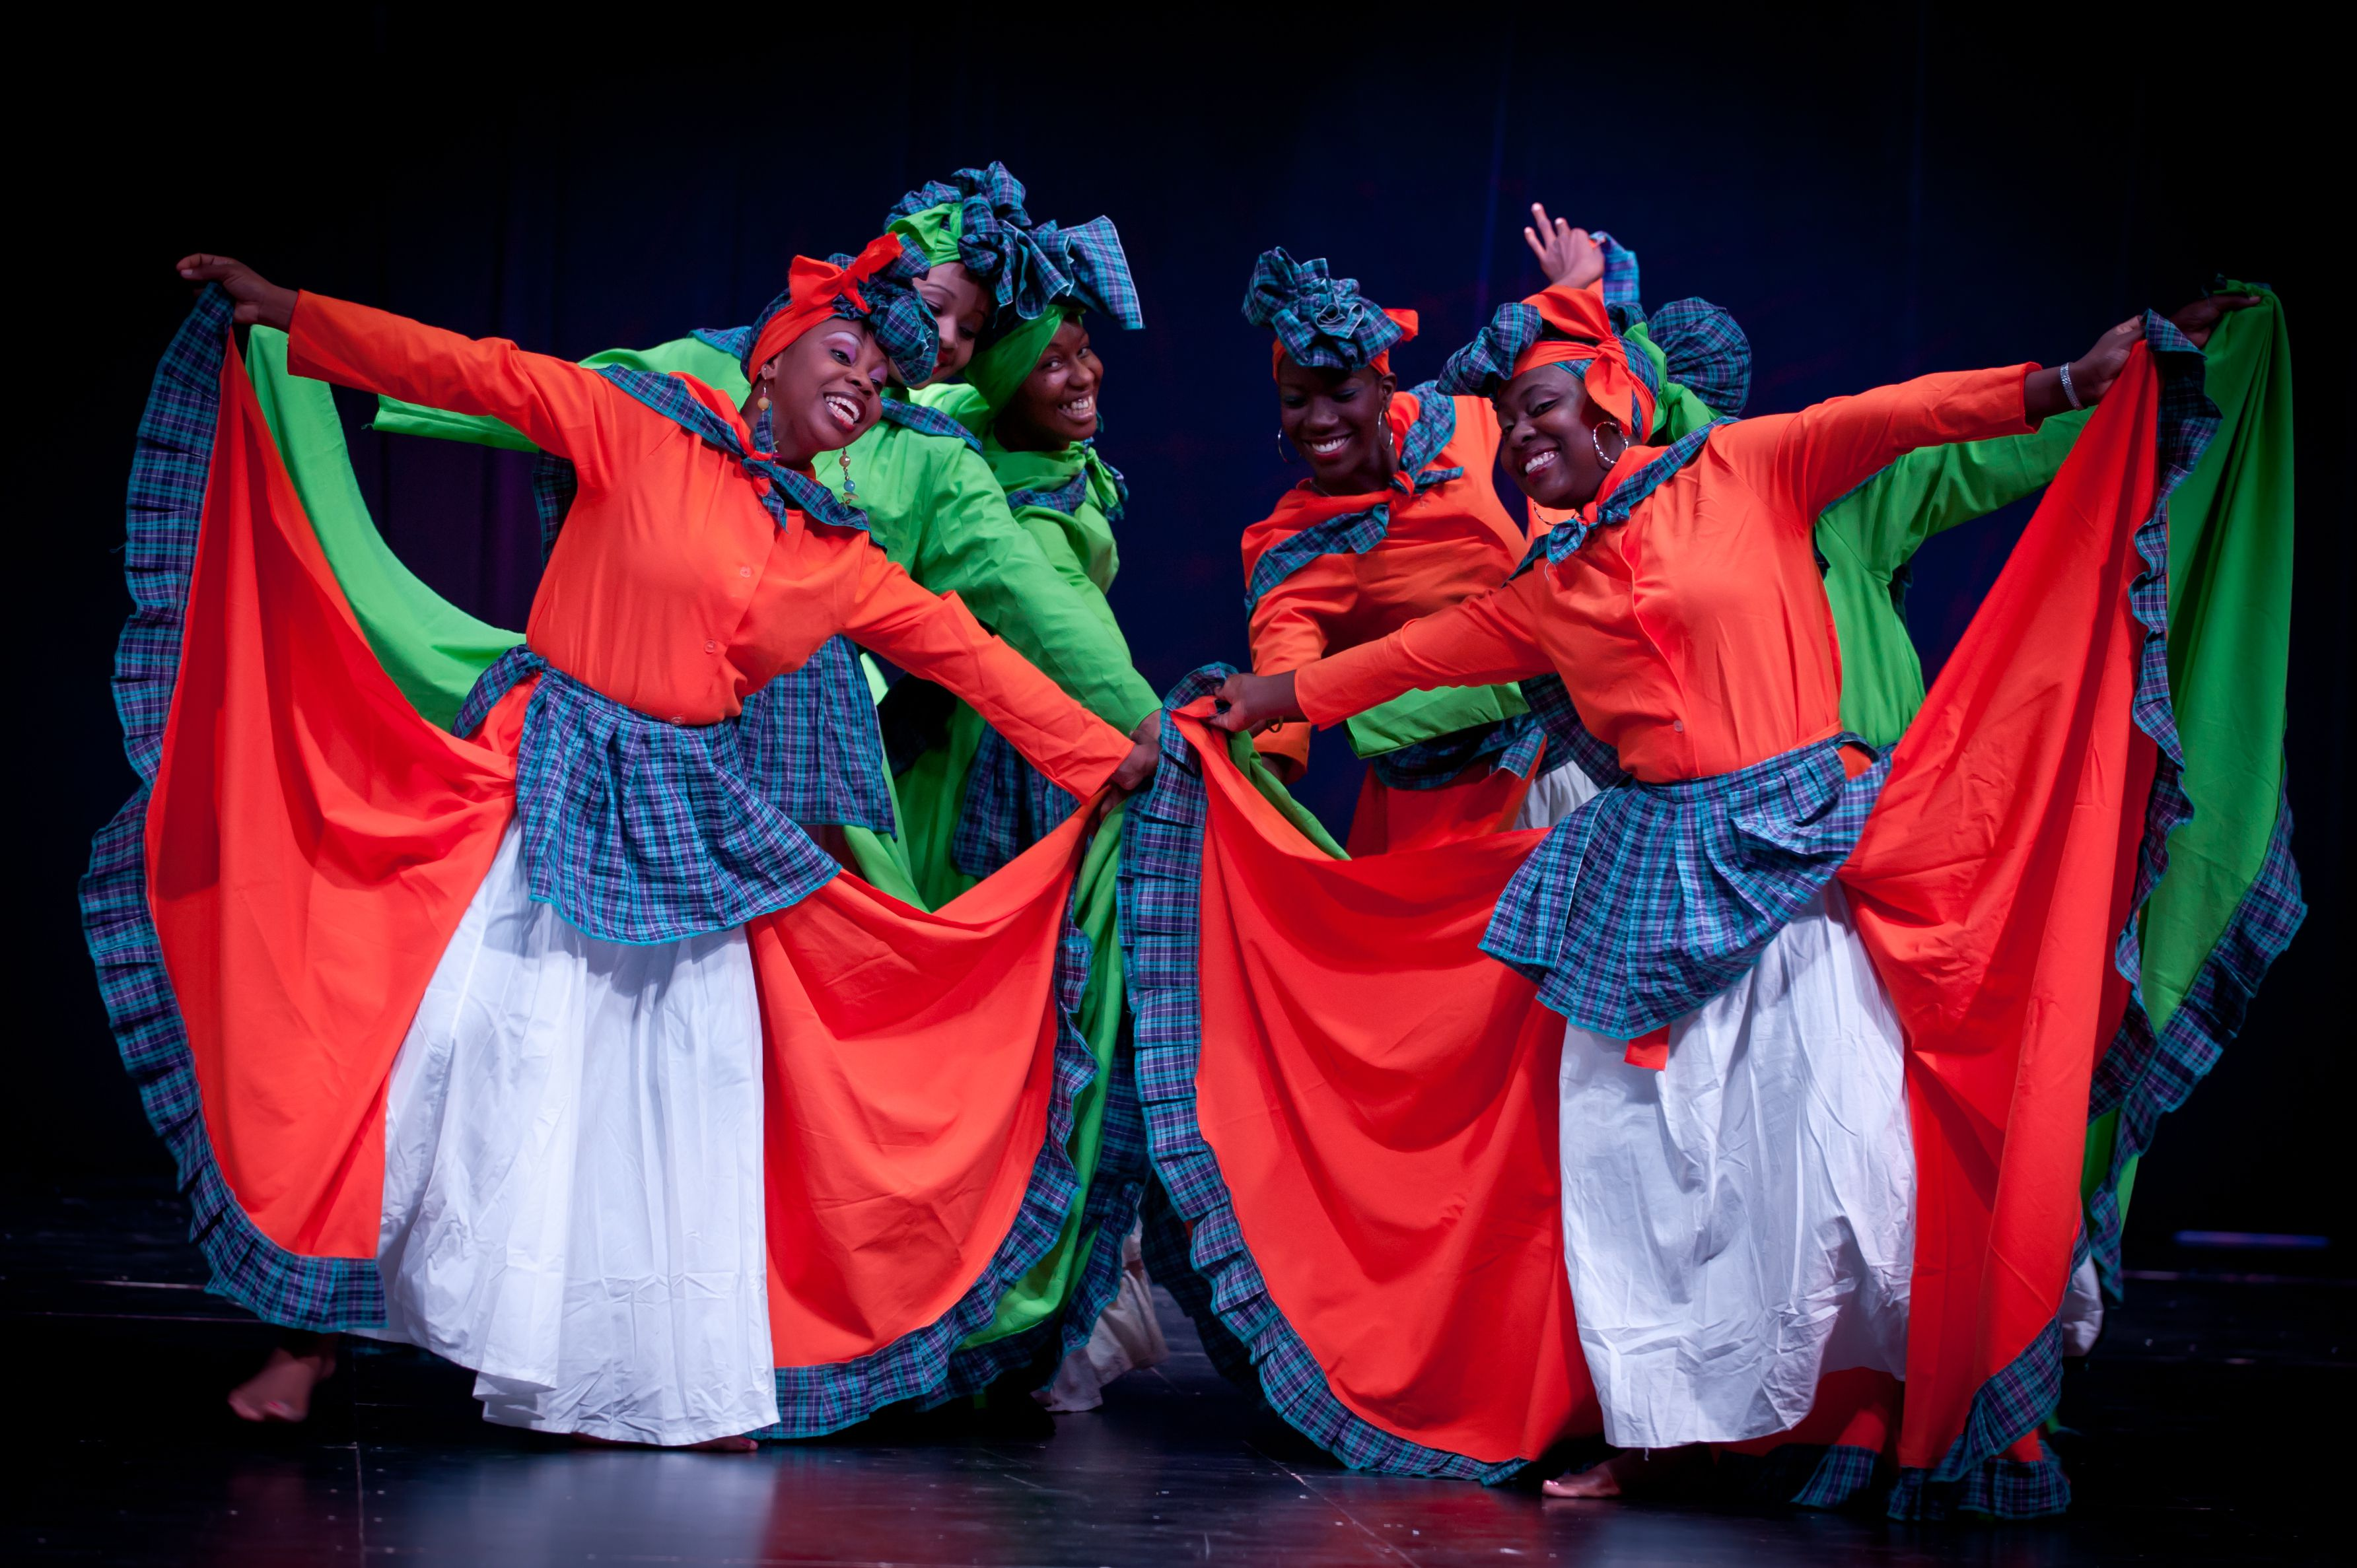 Six dancers in red and and green costumes dancing on stage at the Spice basket